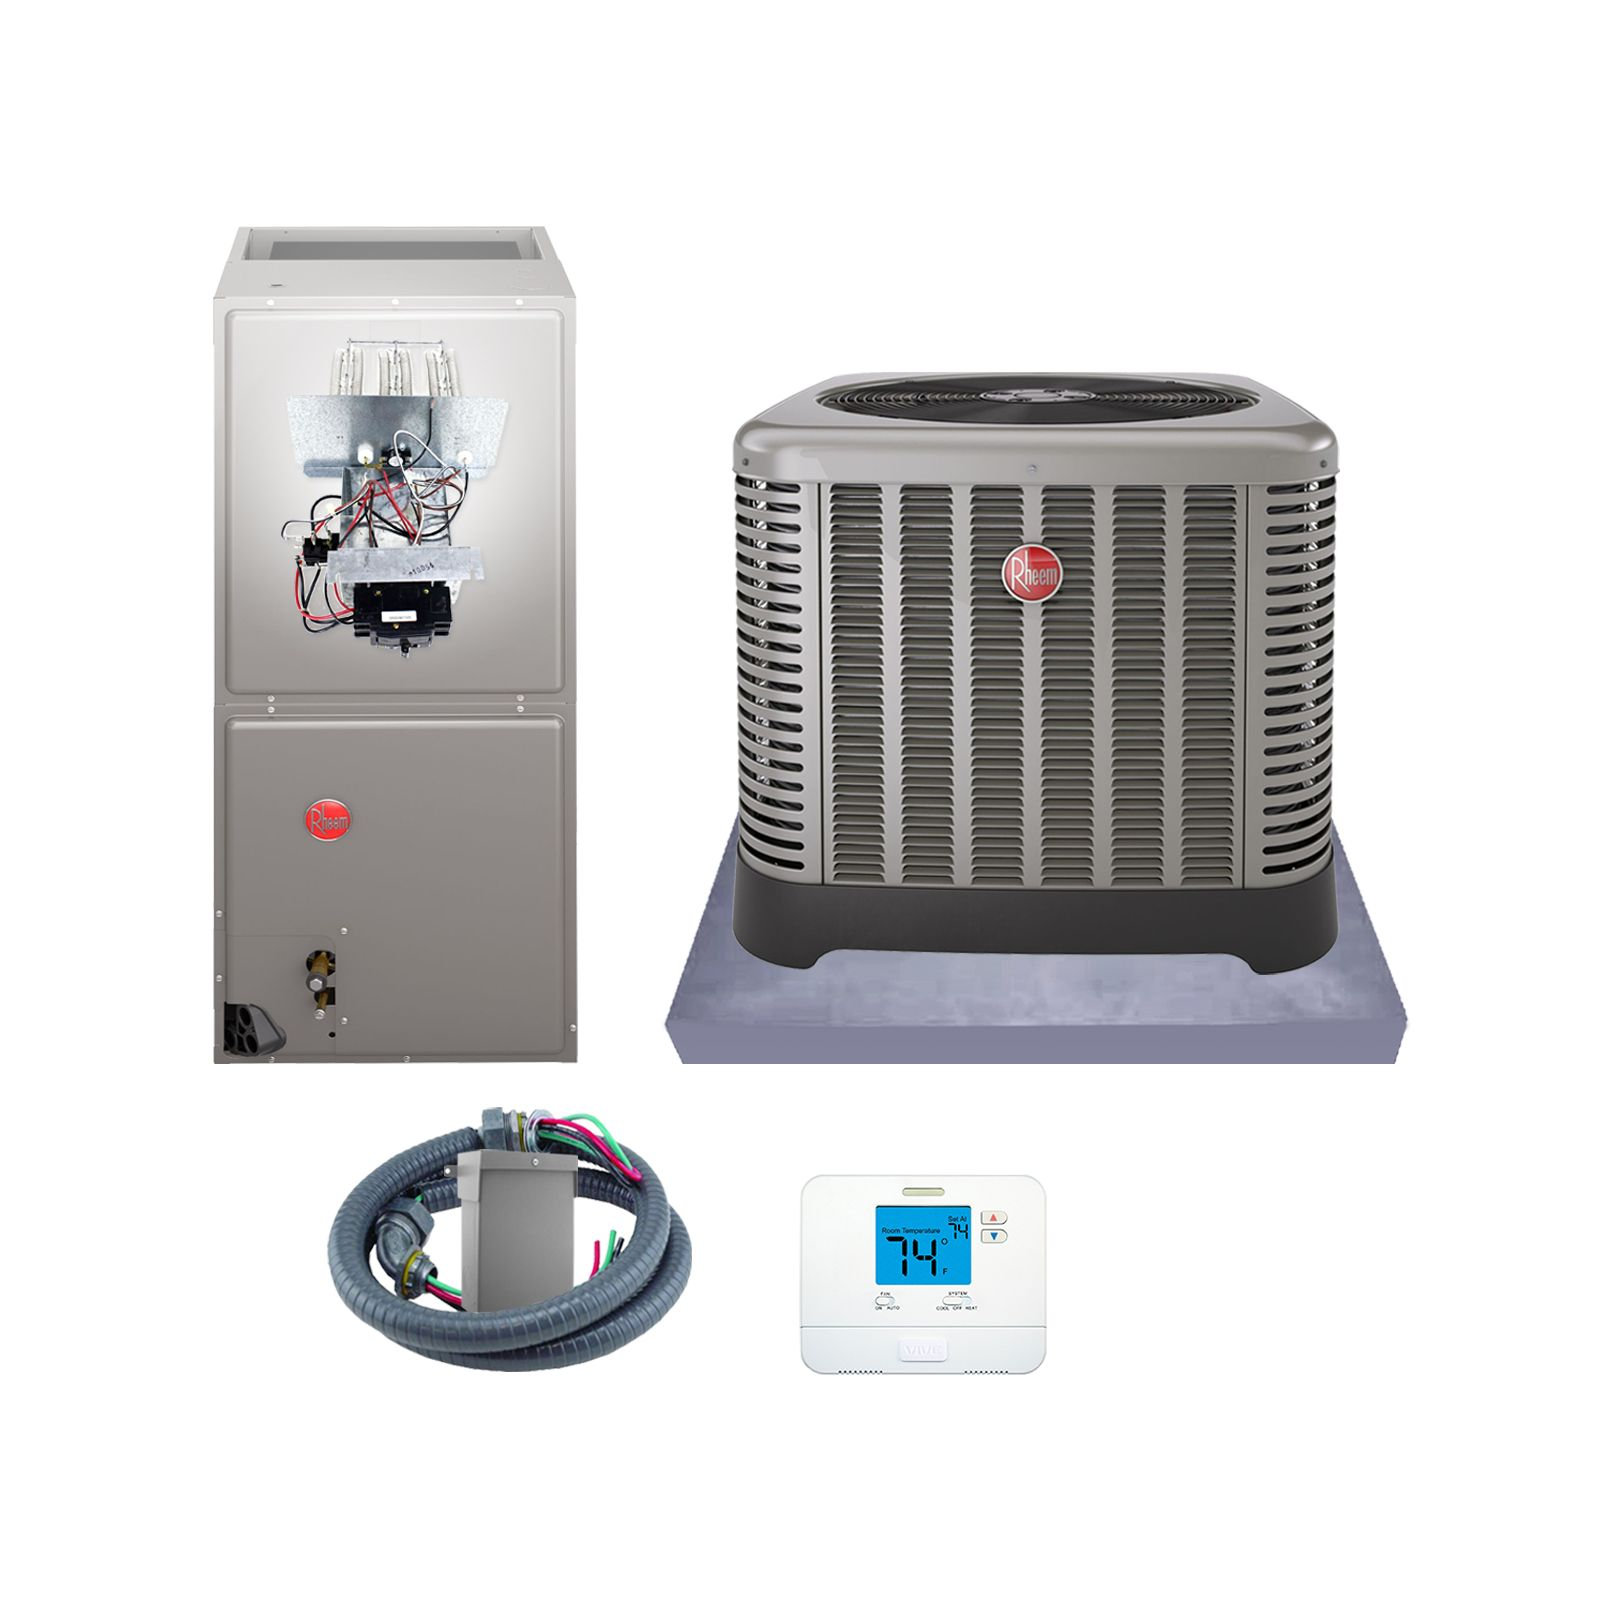 Rheem (AHRI 7943535) 4 Ton, 16 SEER/13 EER Classic Series, Air Conditioner Split System and Install Kit